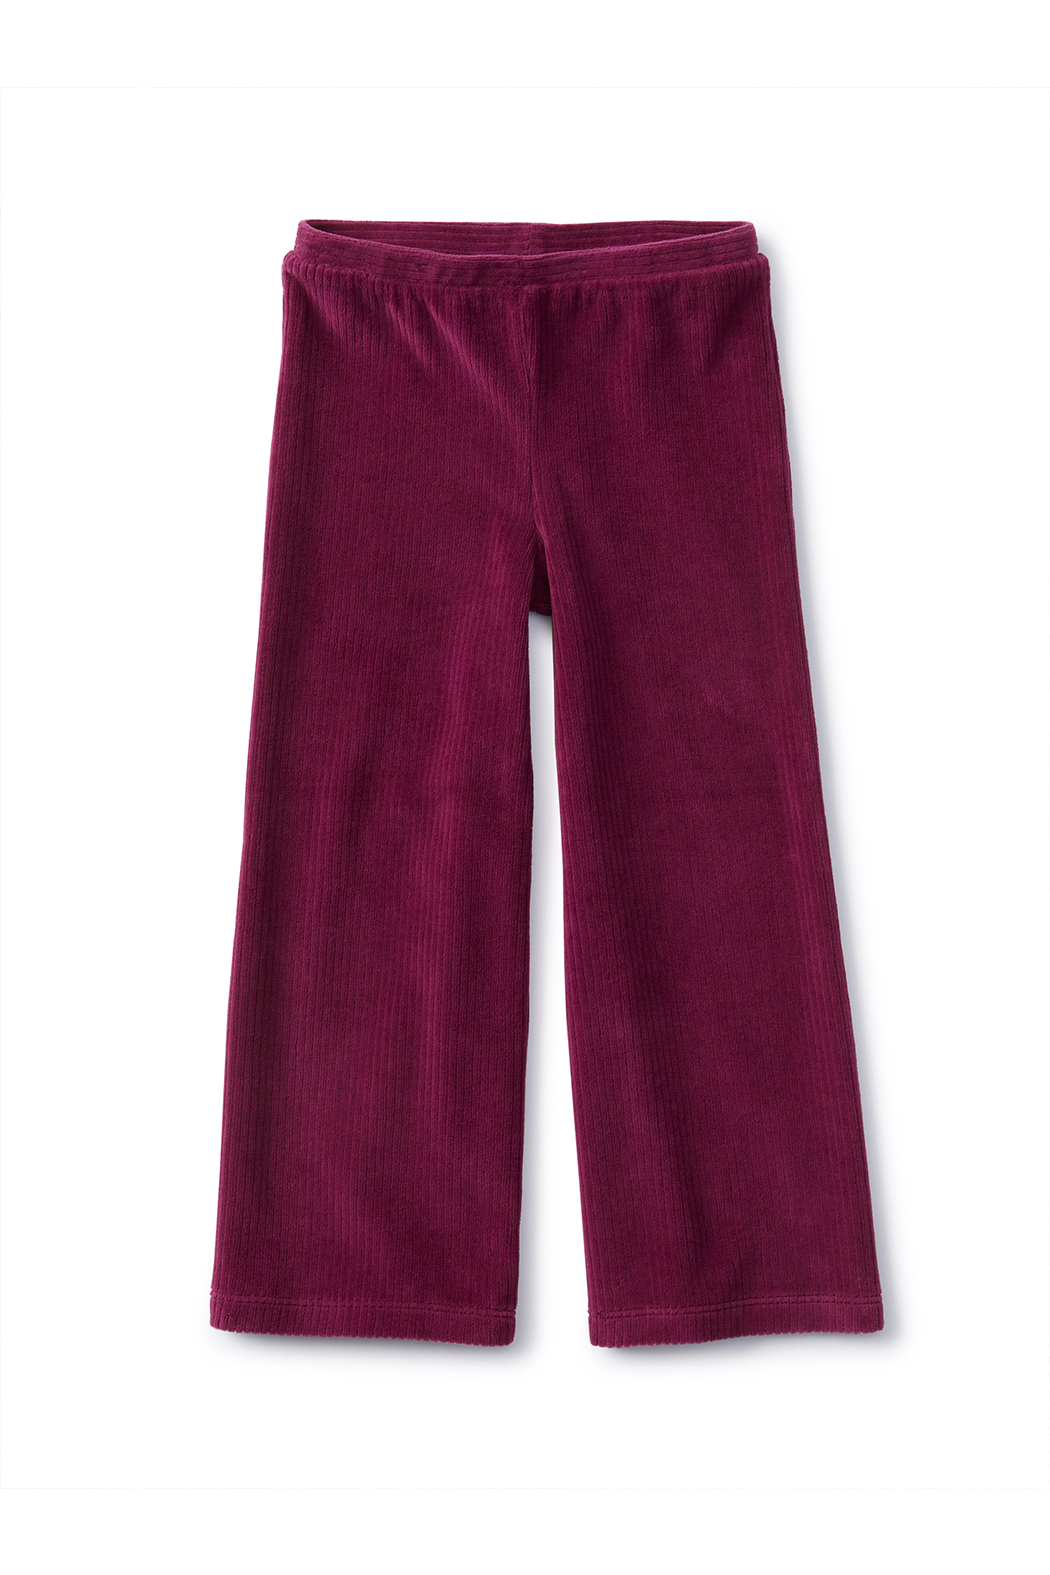 Tea Collection  Flare For Fun Stretch Pants - Cosmic Berry - Main Image